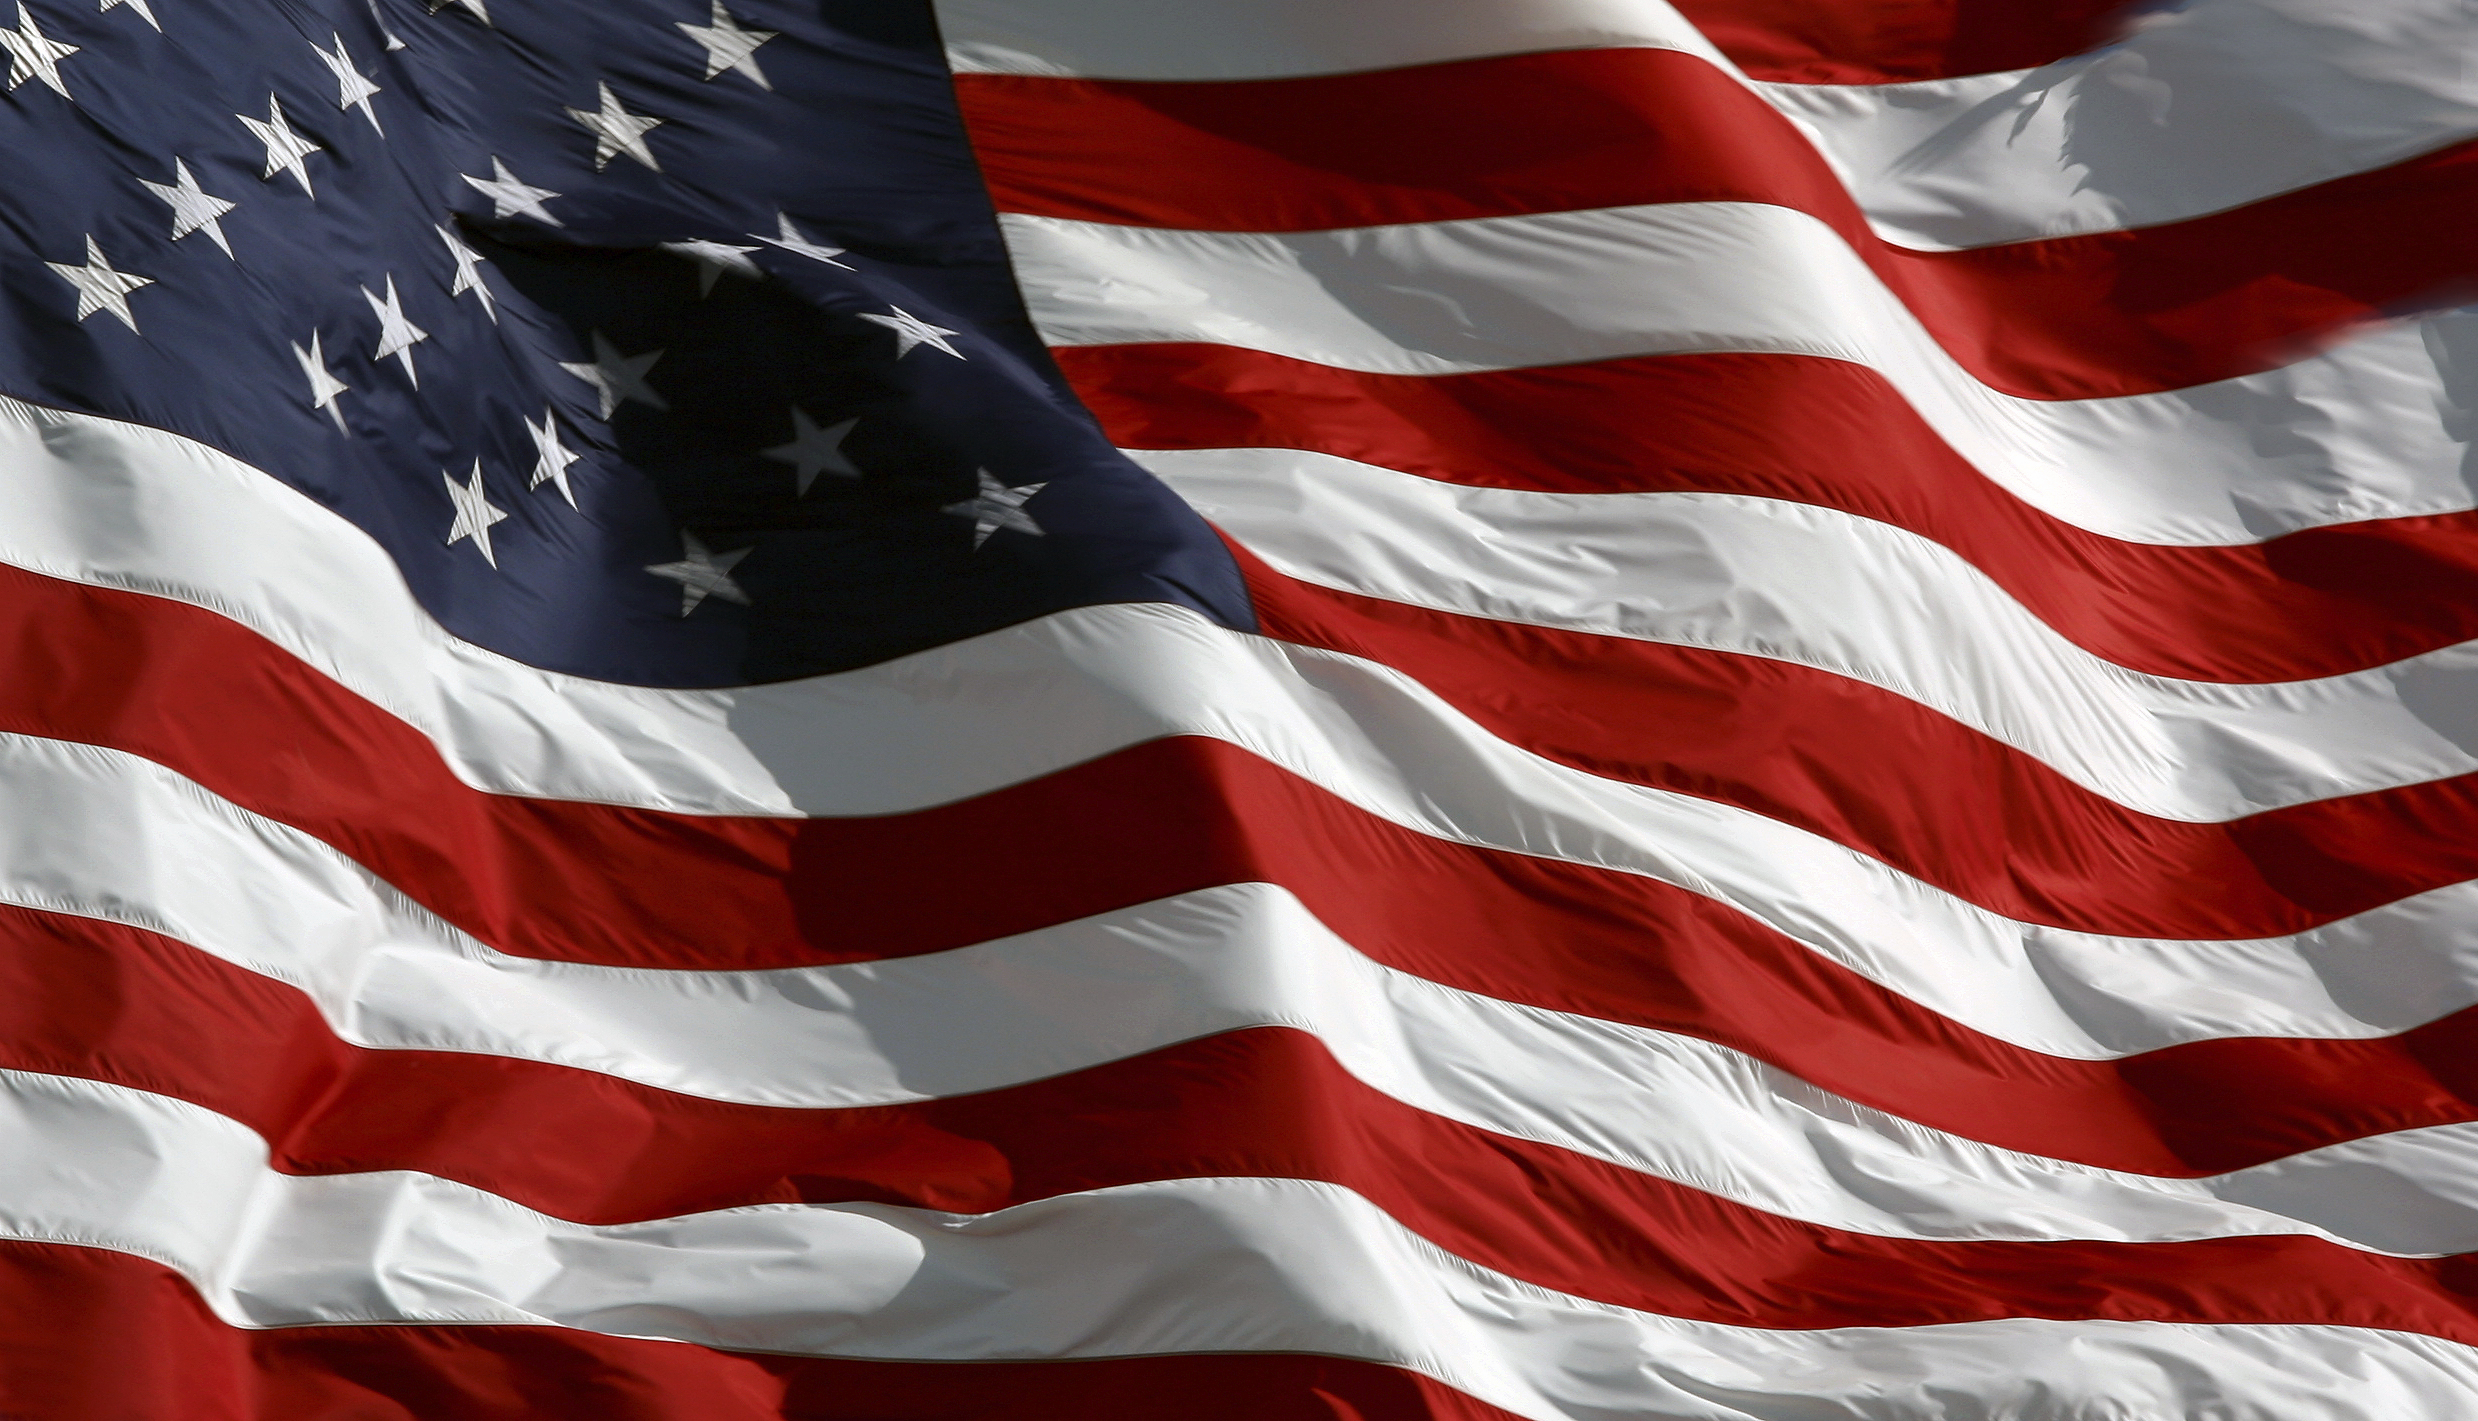 1000+ ideas about American Flag Wallpaper on Pinterest | American